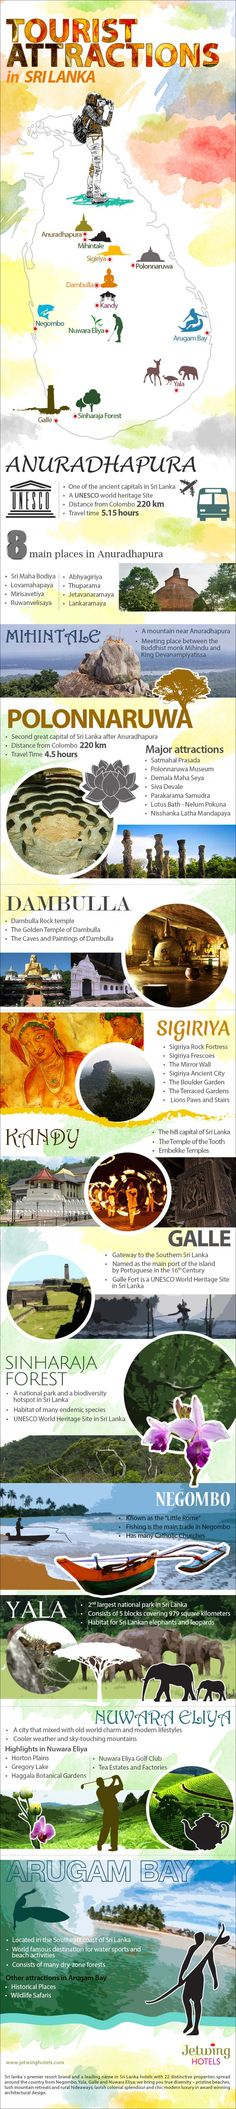 Tourist Attractions in Sri Lanka #Infographic